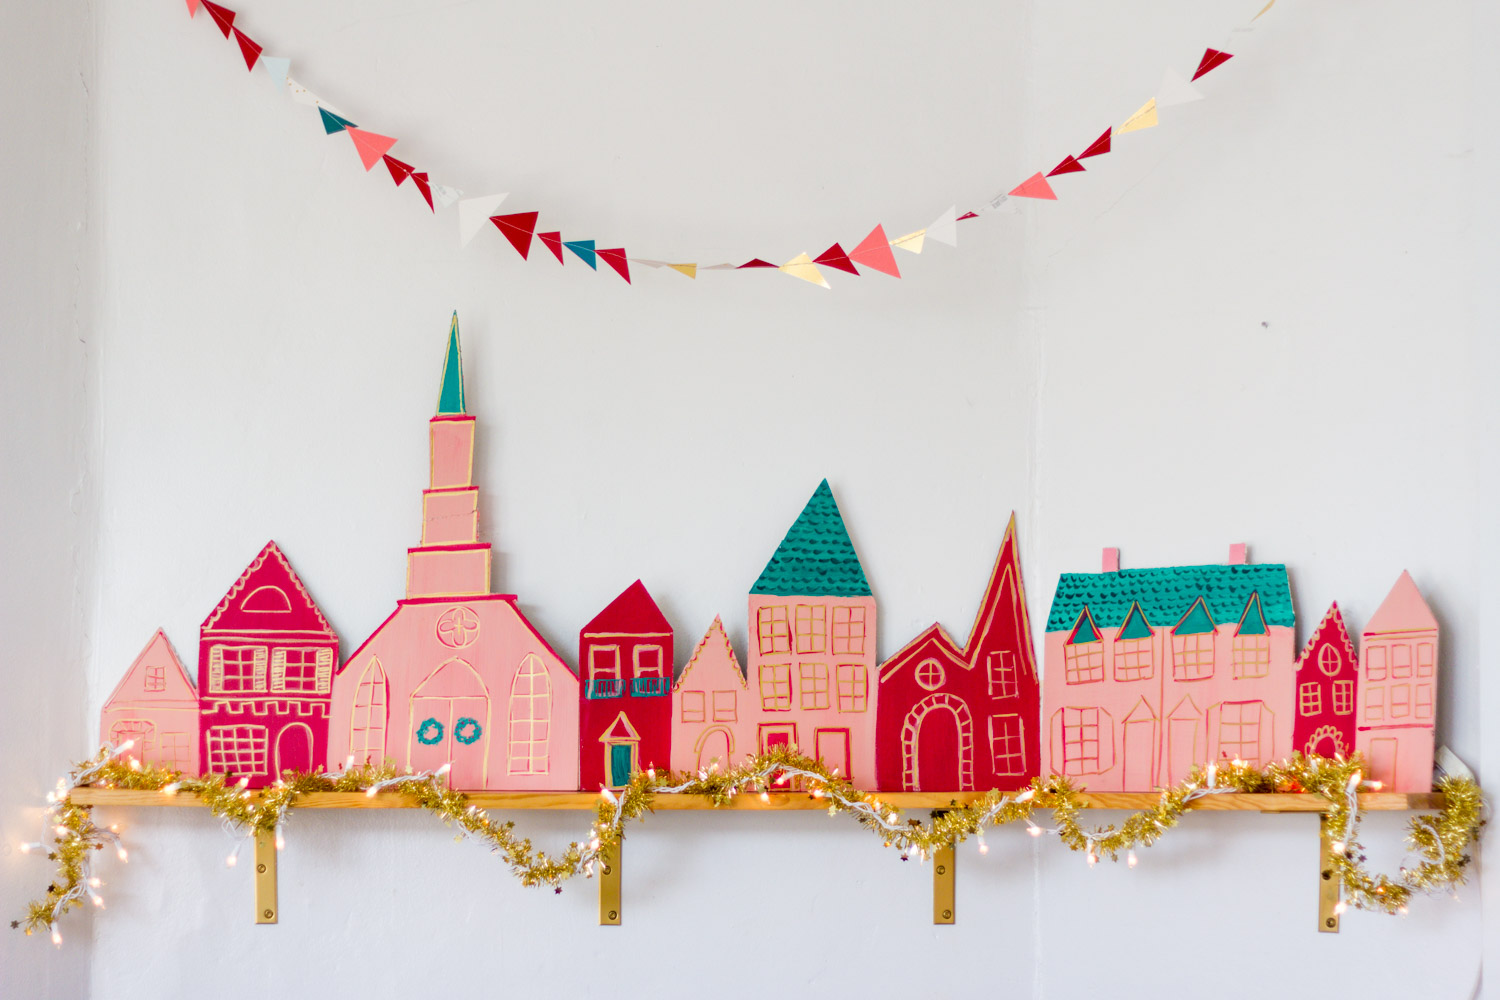 Handmade Red and Pink Christmas Village